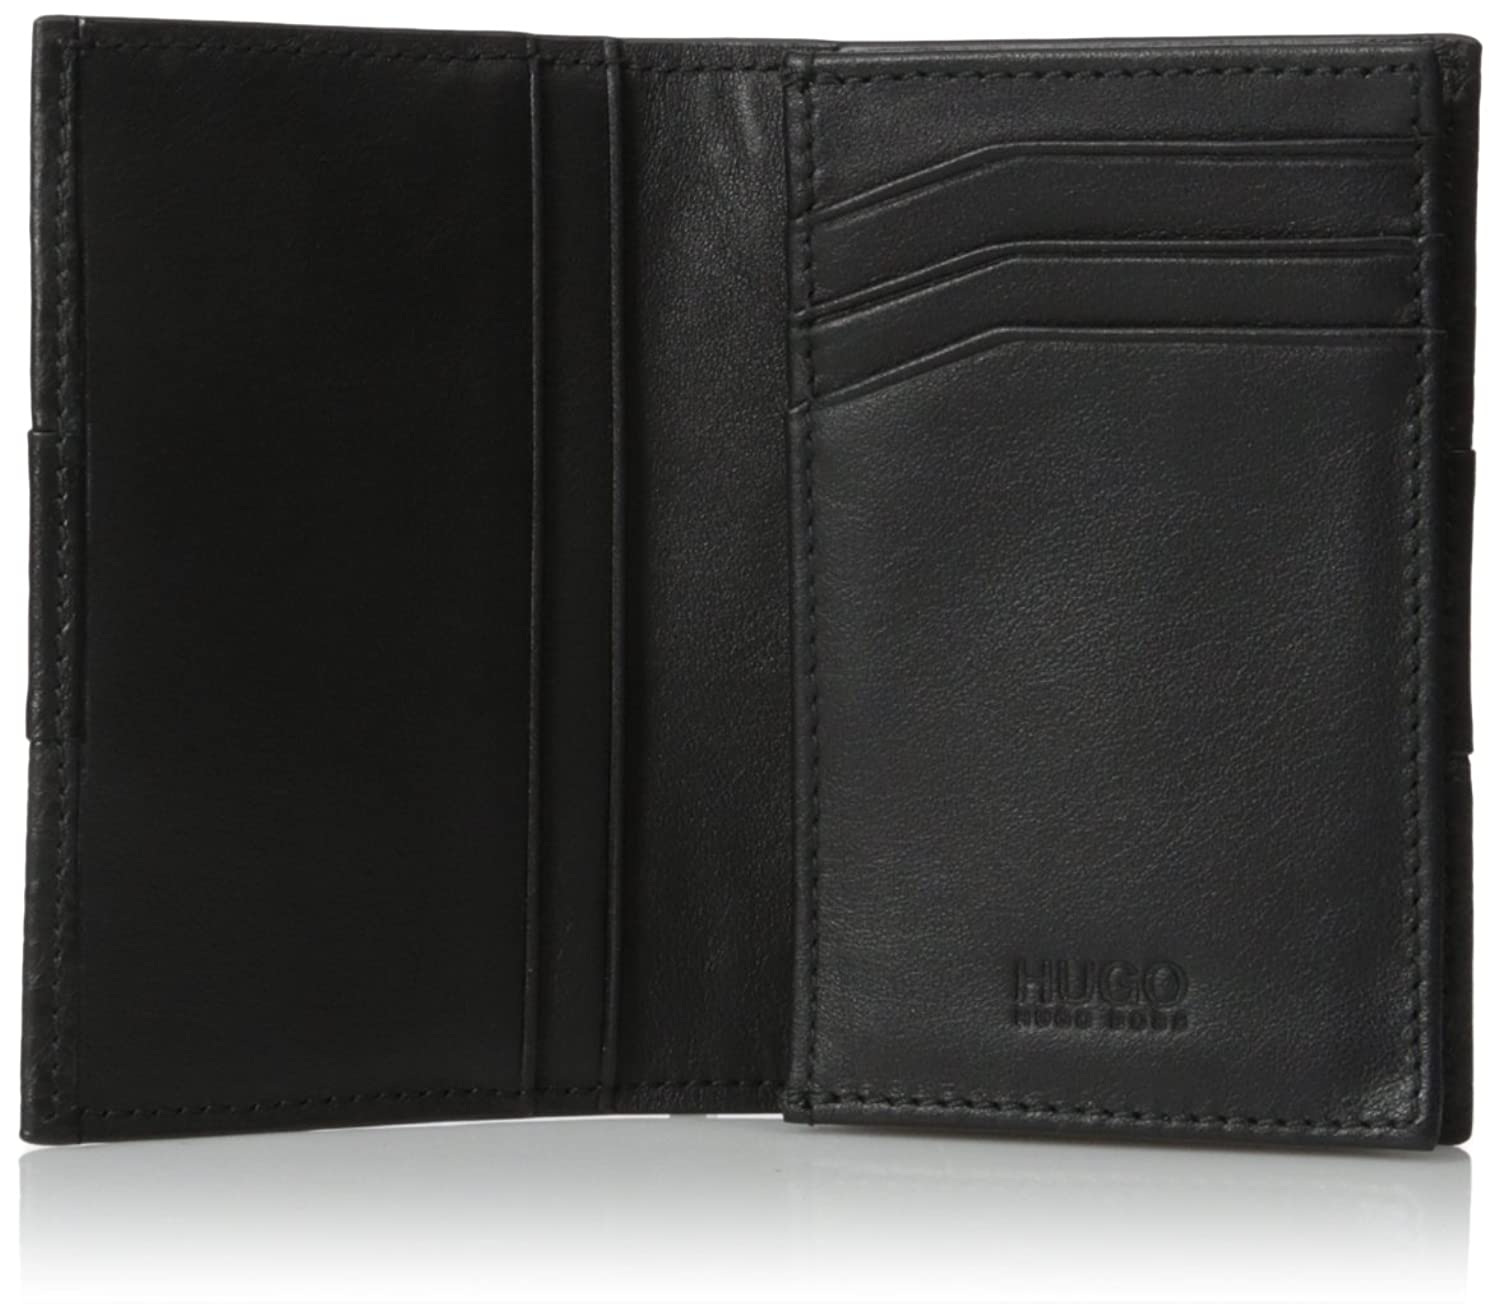 Business Card Holder Hugo Boss Image collections - Card Design And ...